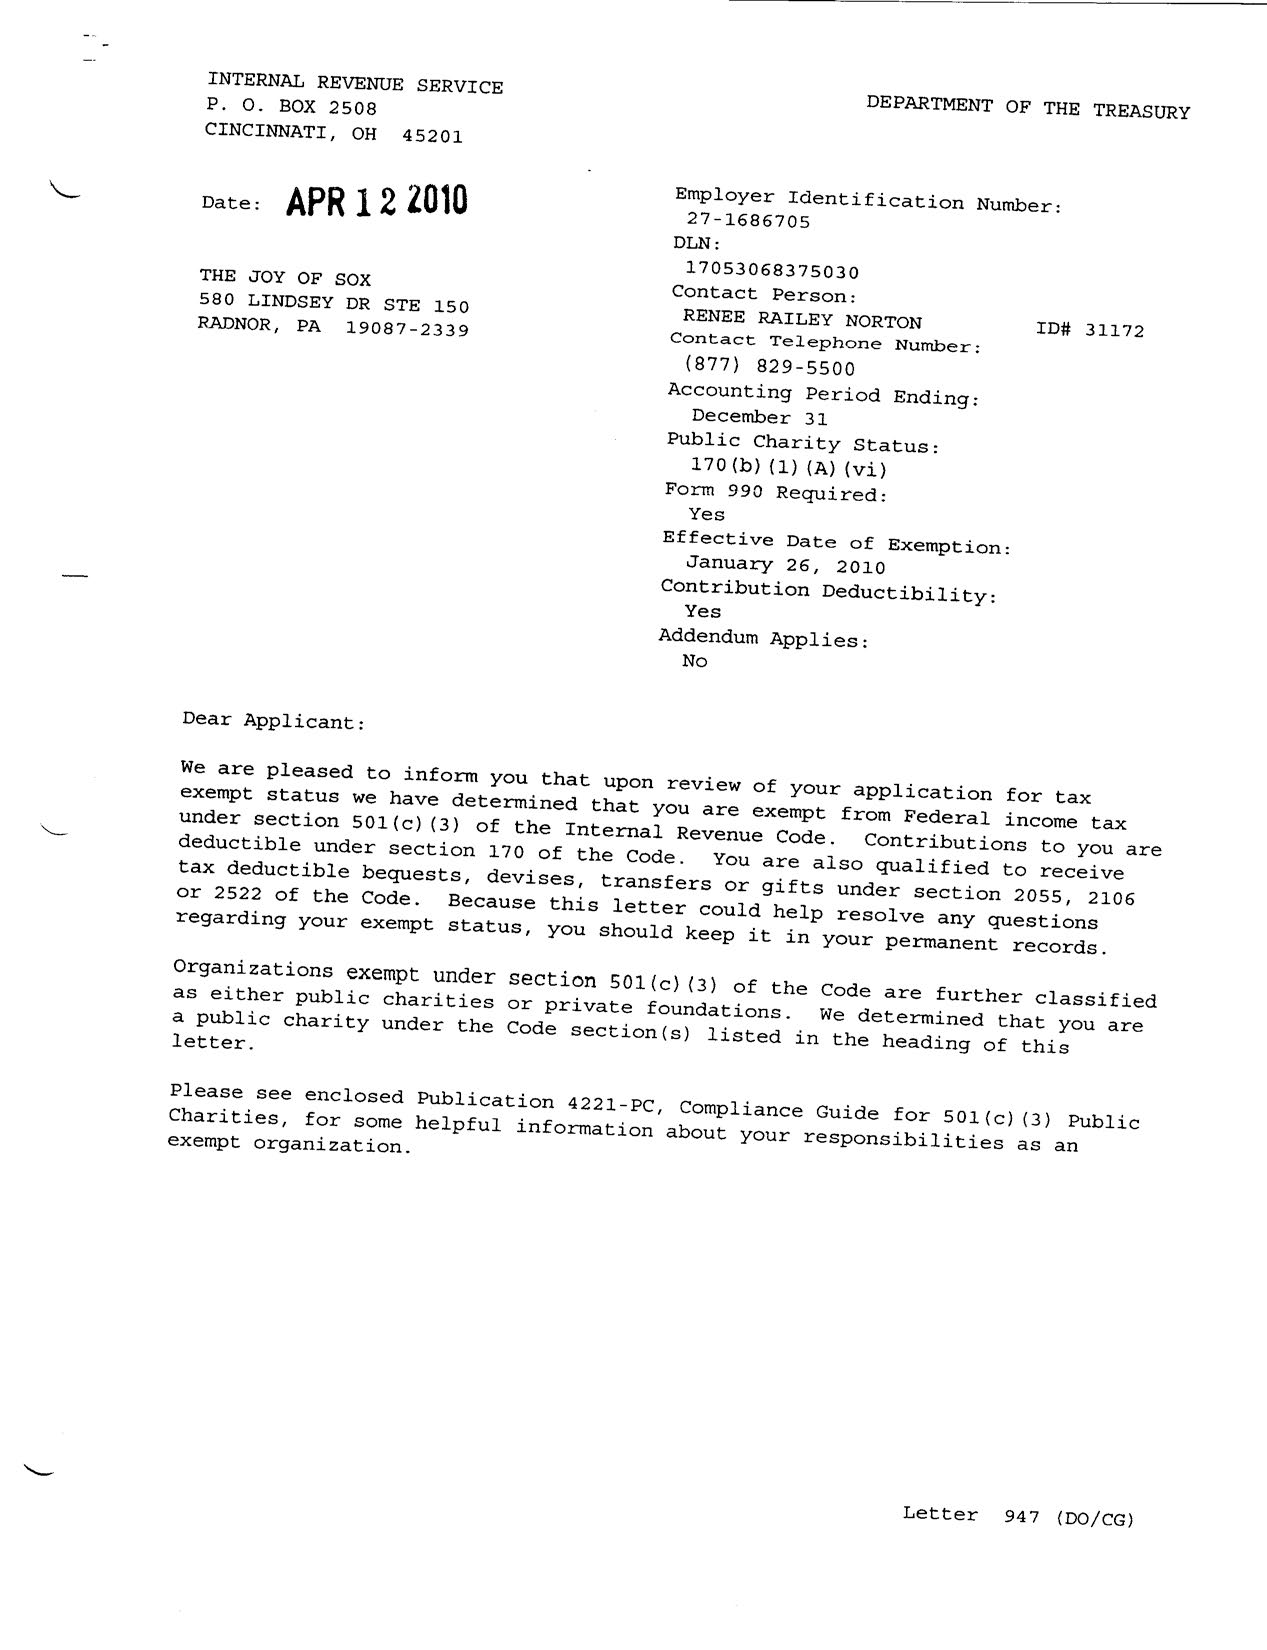 the 501c3 determination letter from the irs for the joy